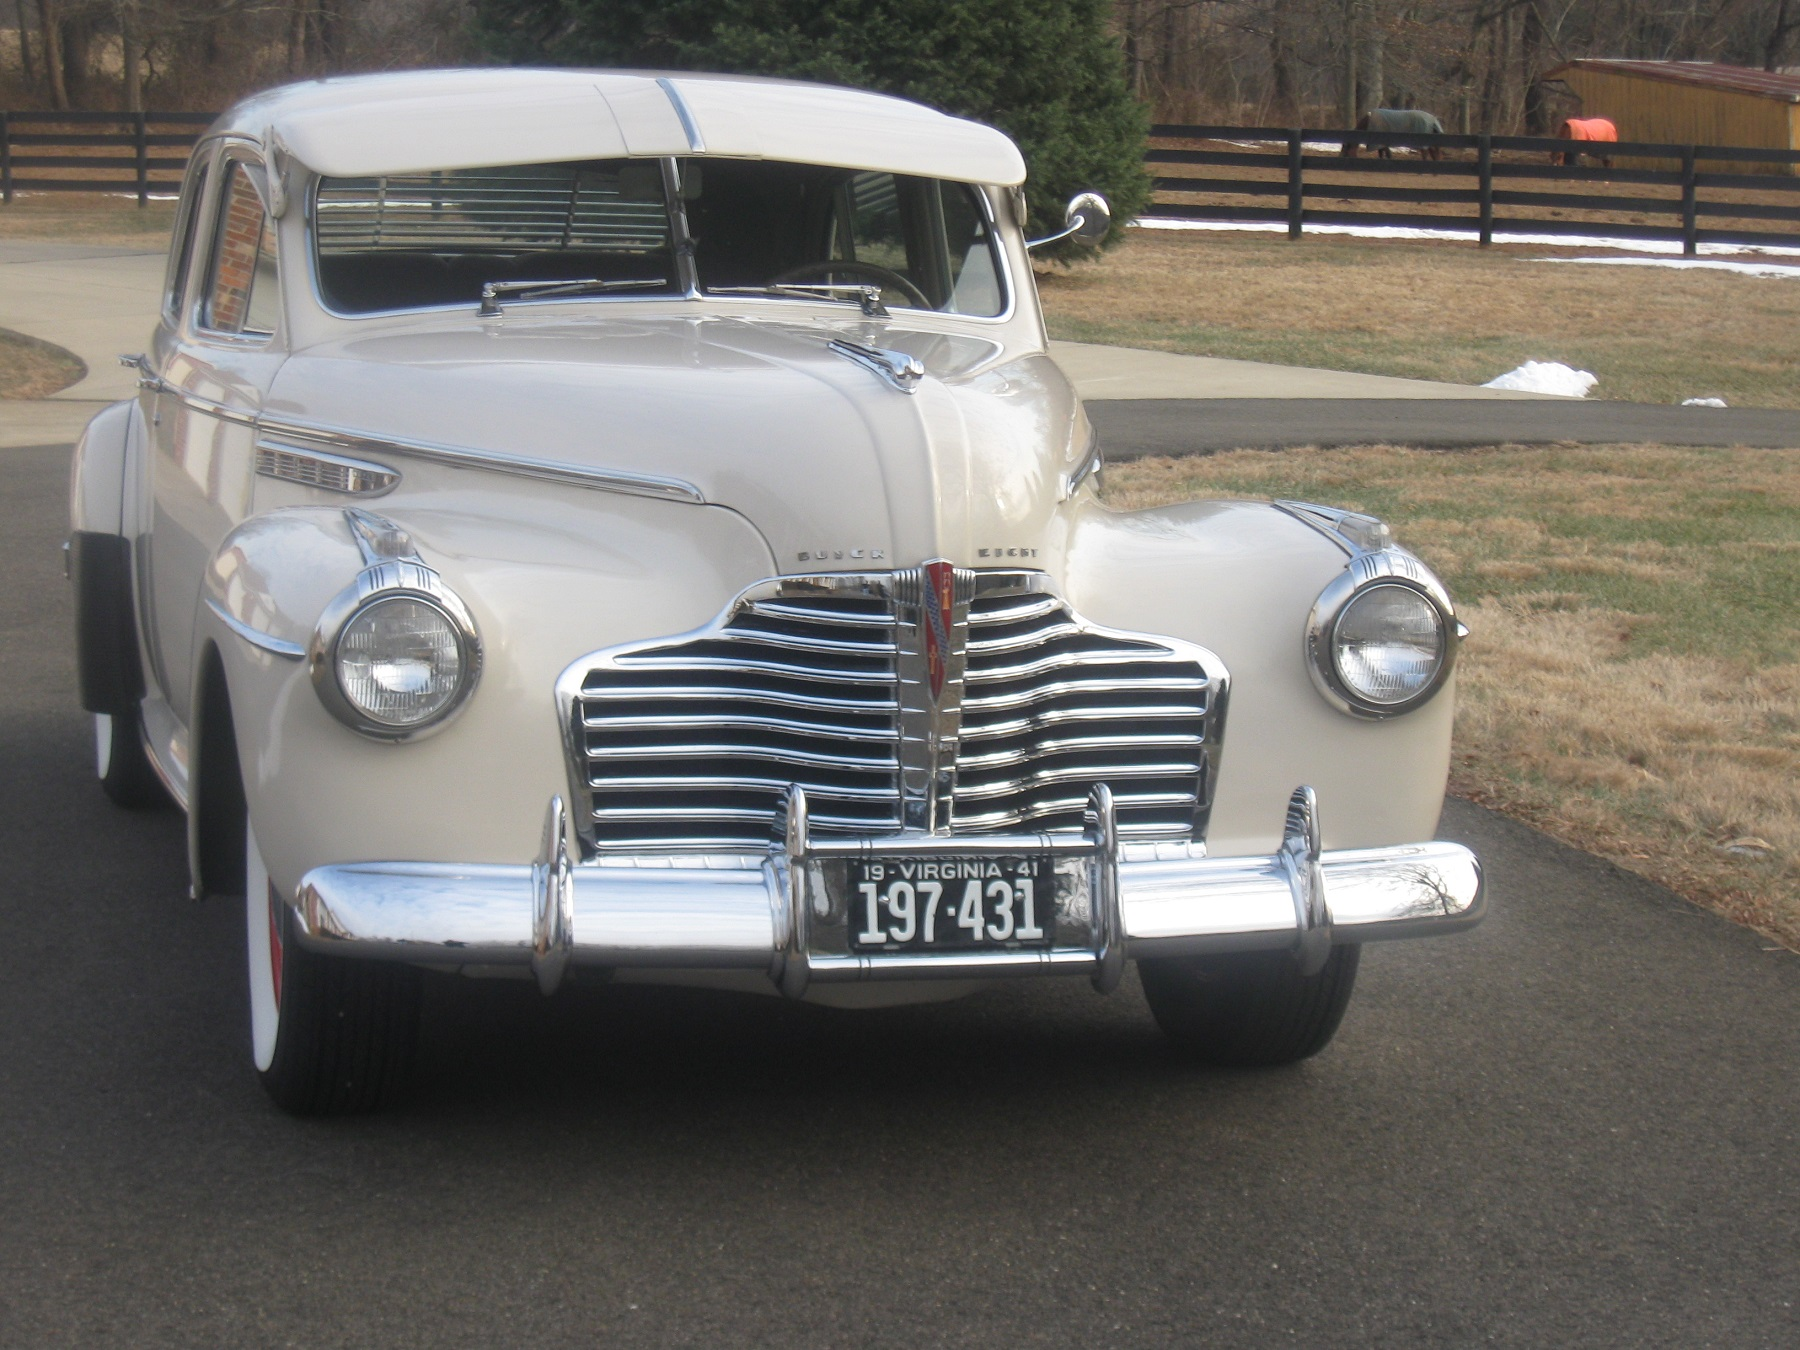 1941 buick series 50 super four door sedan for 1941 buick 4 door sedan